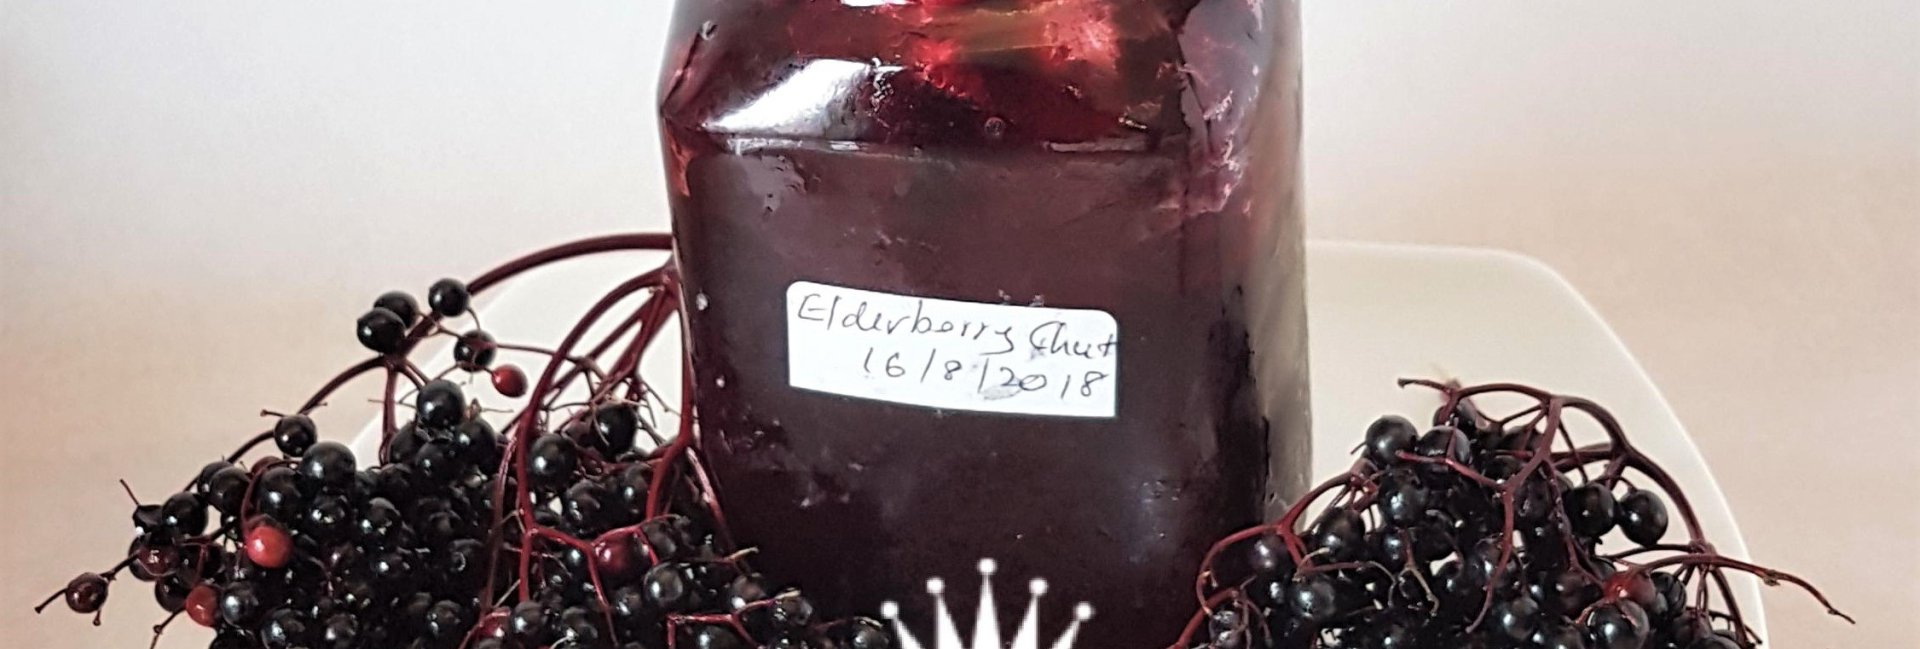 Elderberry Chutney ready to be eaten, on a spoon..